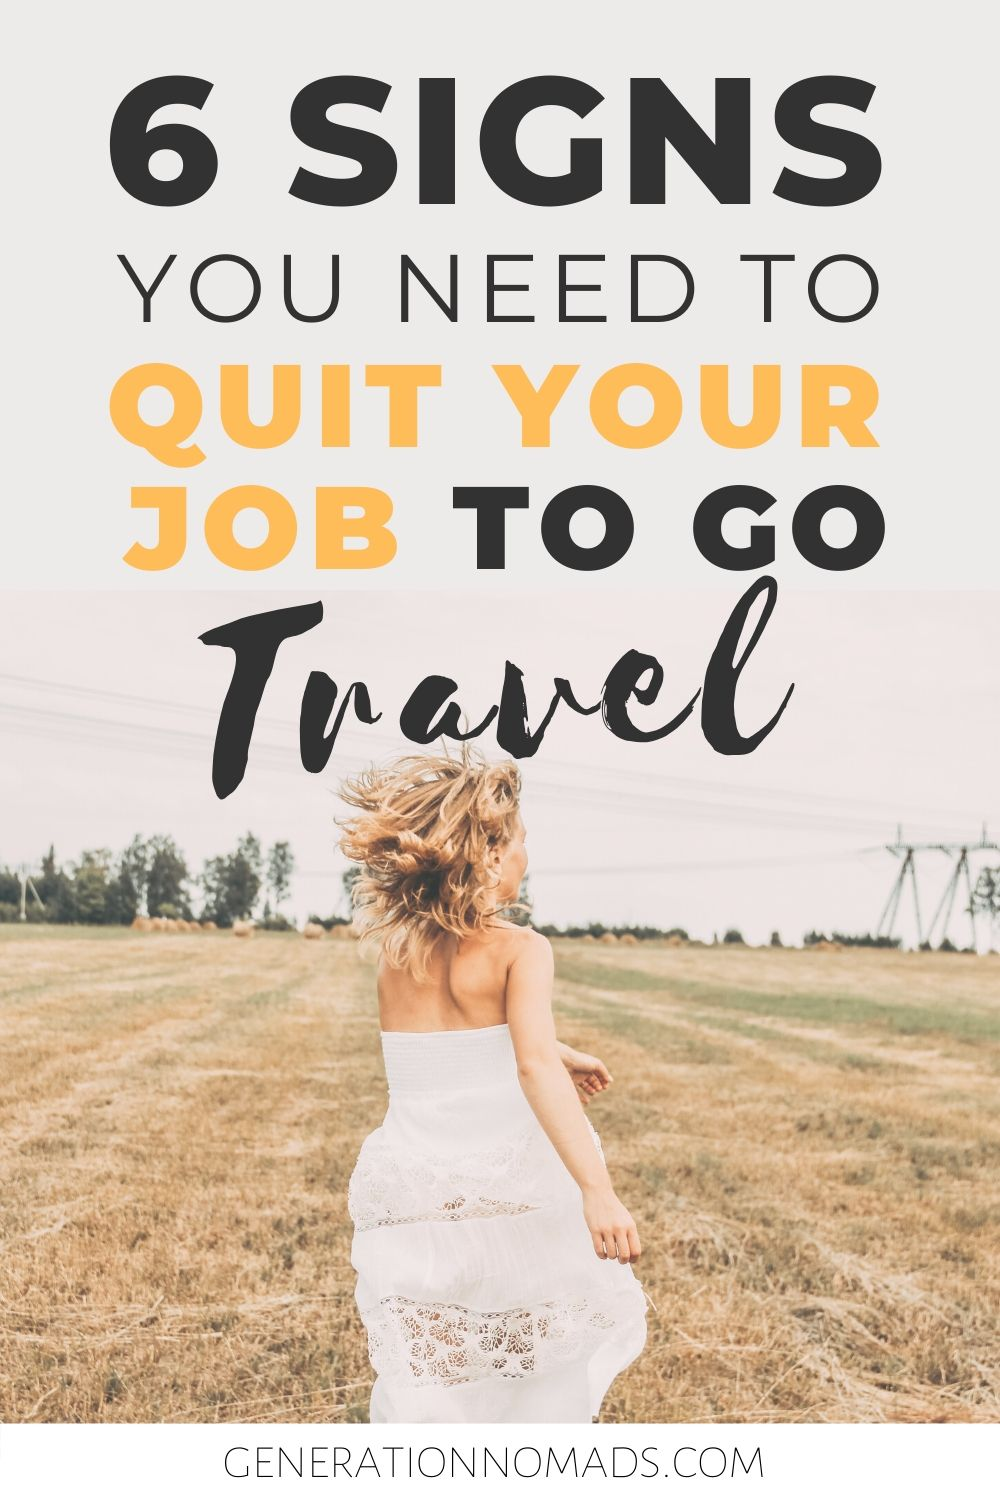 Are you tired of your 9-5? It's time you start asking yourself if you're ready for making a career change and changing your life completely. Before you quit your job, here are 6 signs that you're ready to quit your job and travel. How to quit your job is one of the most challenging life decisions. It's scary! Self reflection will help you decide if quitting your job will improve life and make you following your passion again.